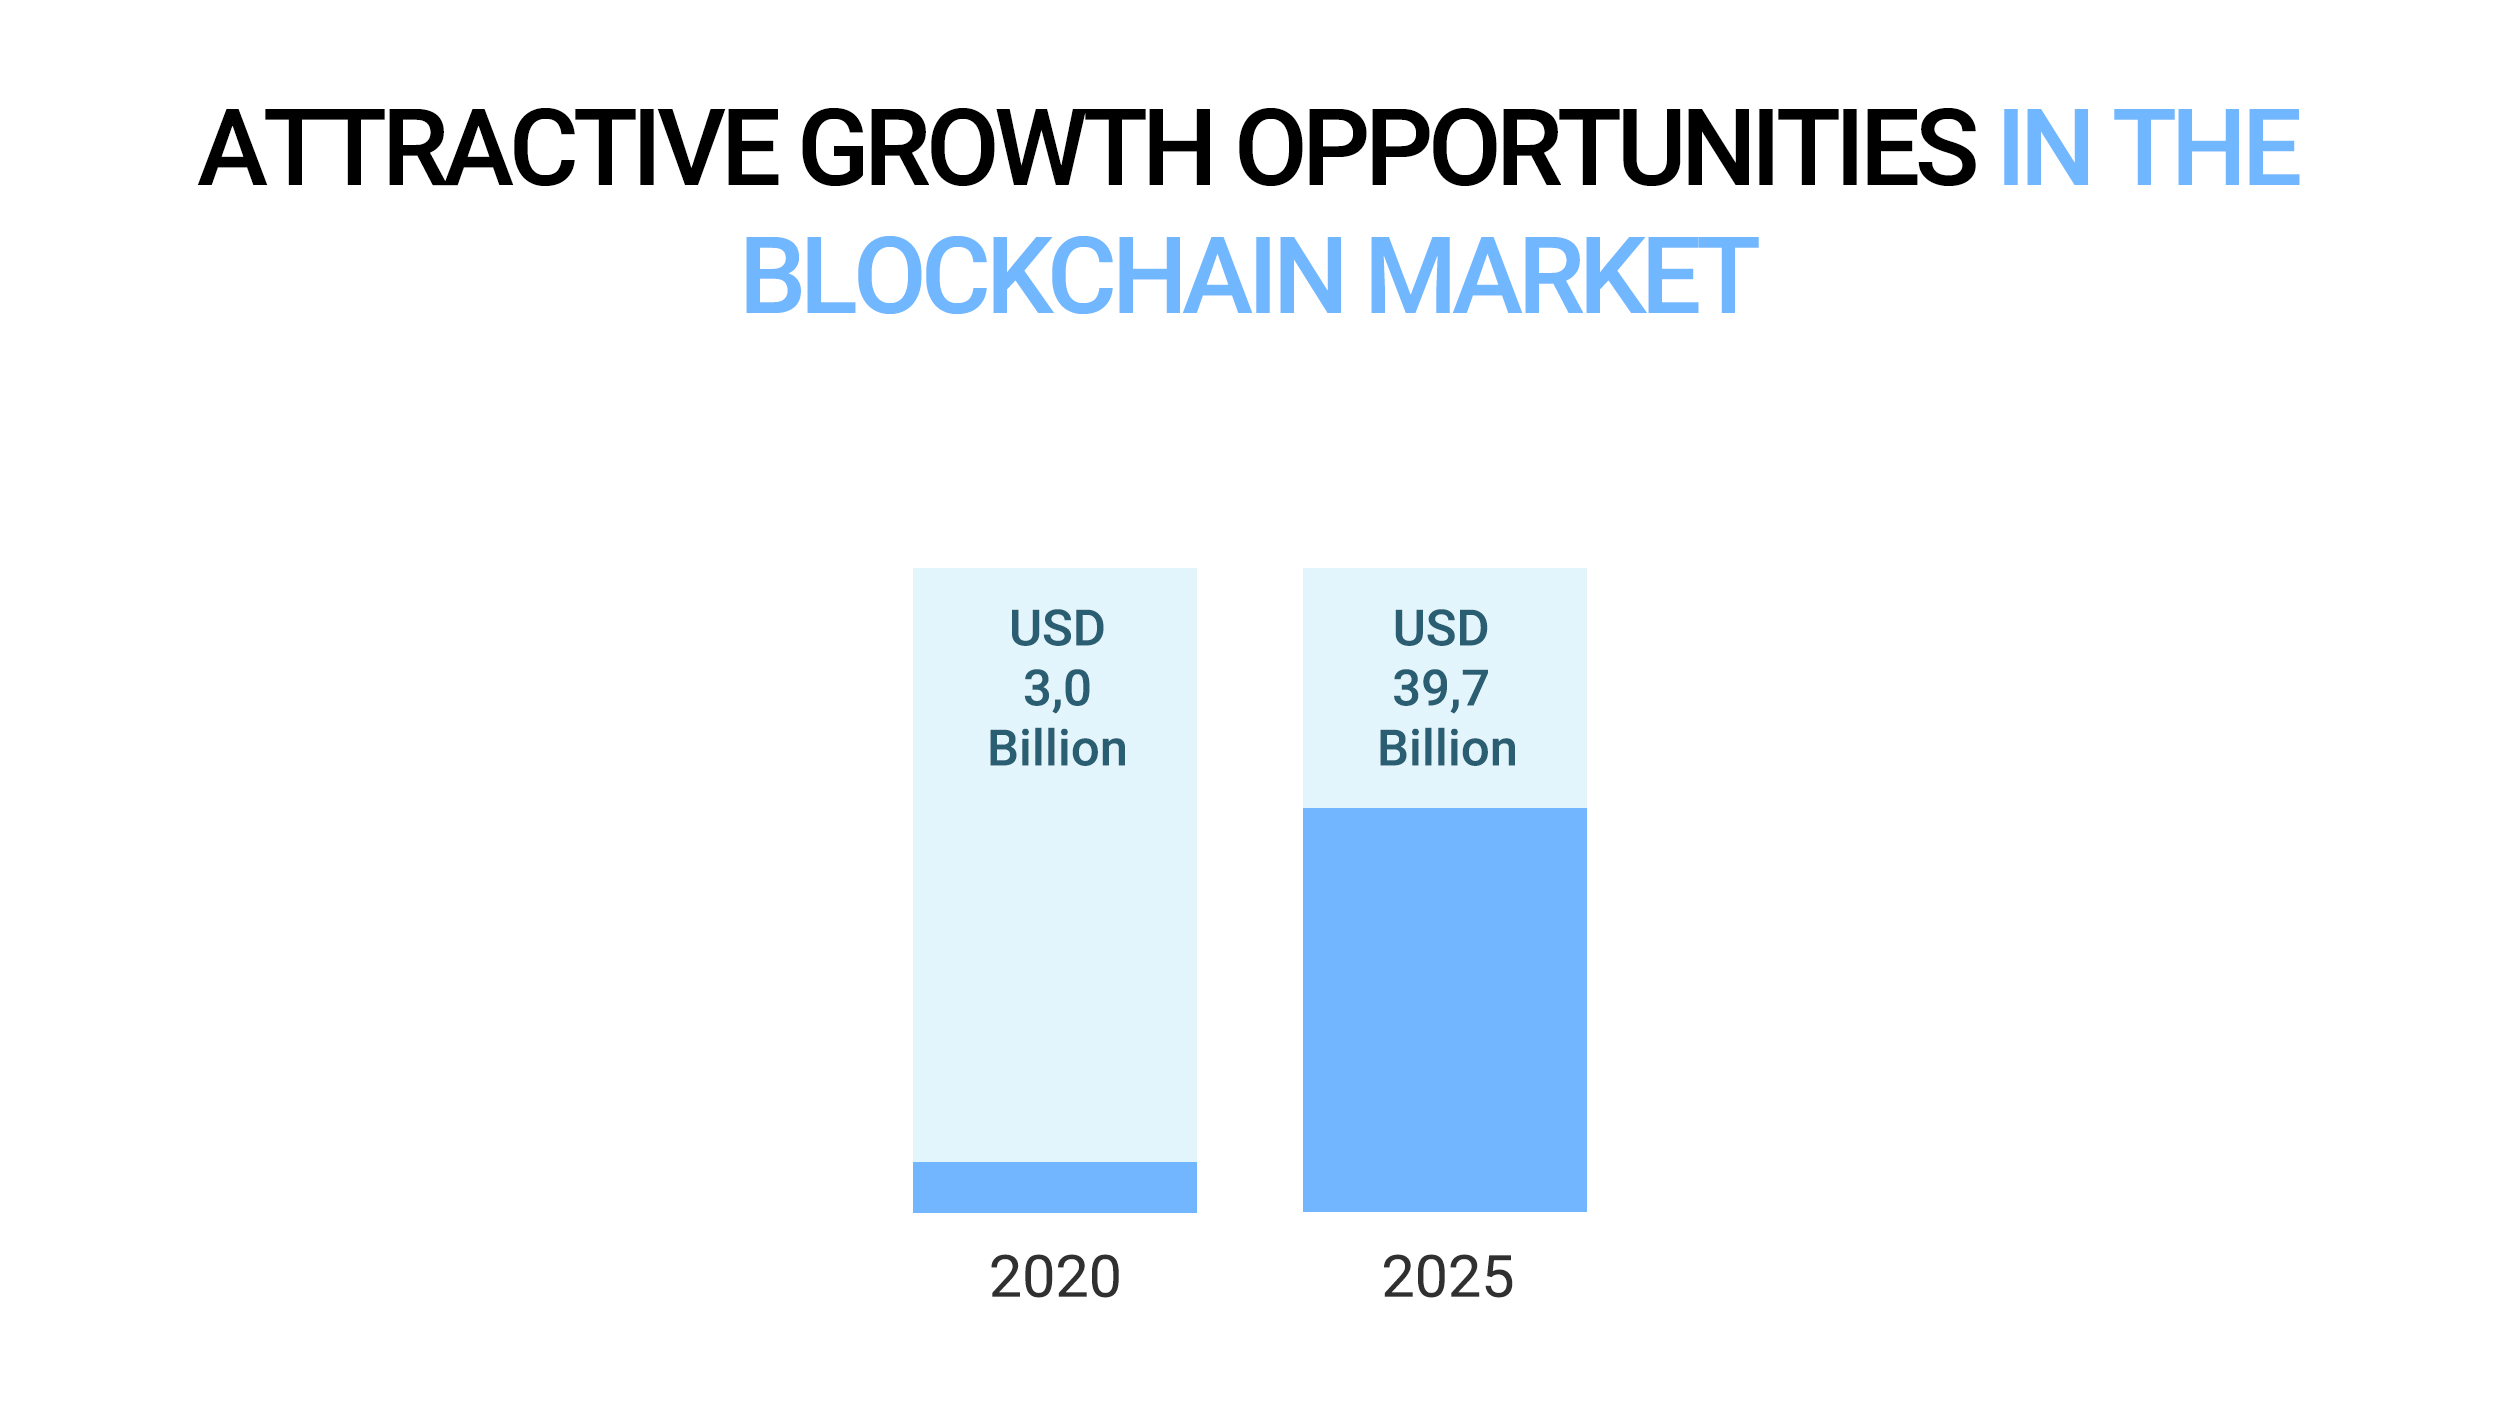 Attractive growth opportunities in the blockchain market